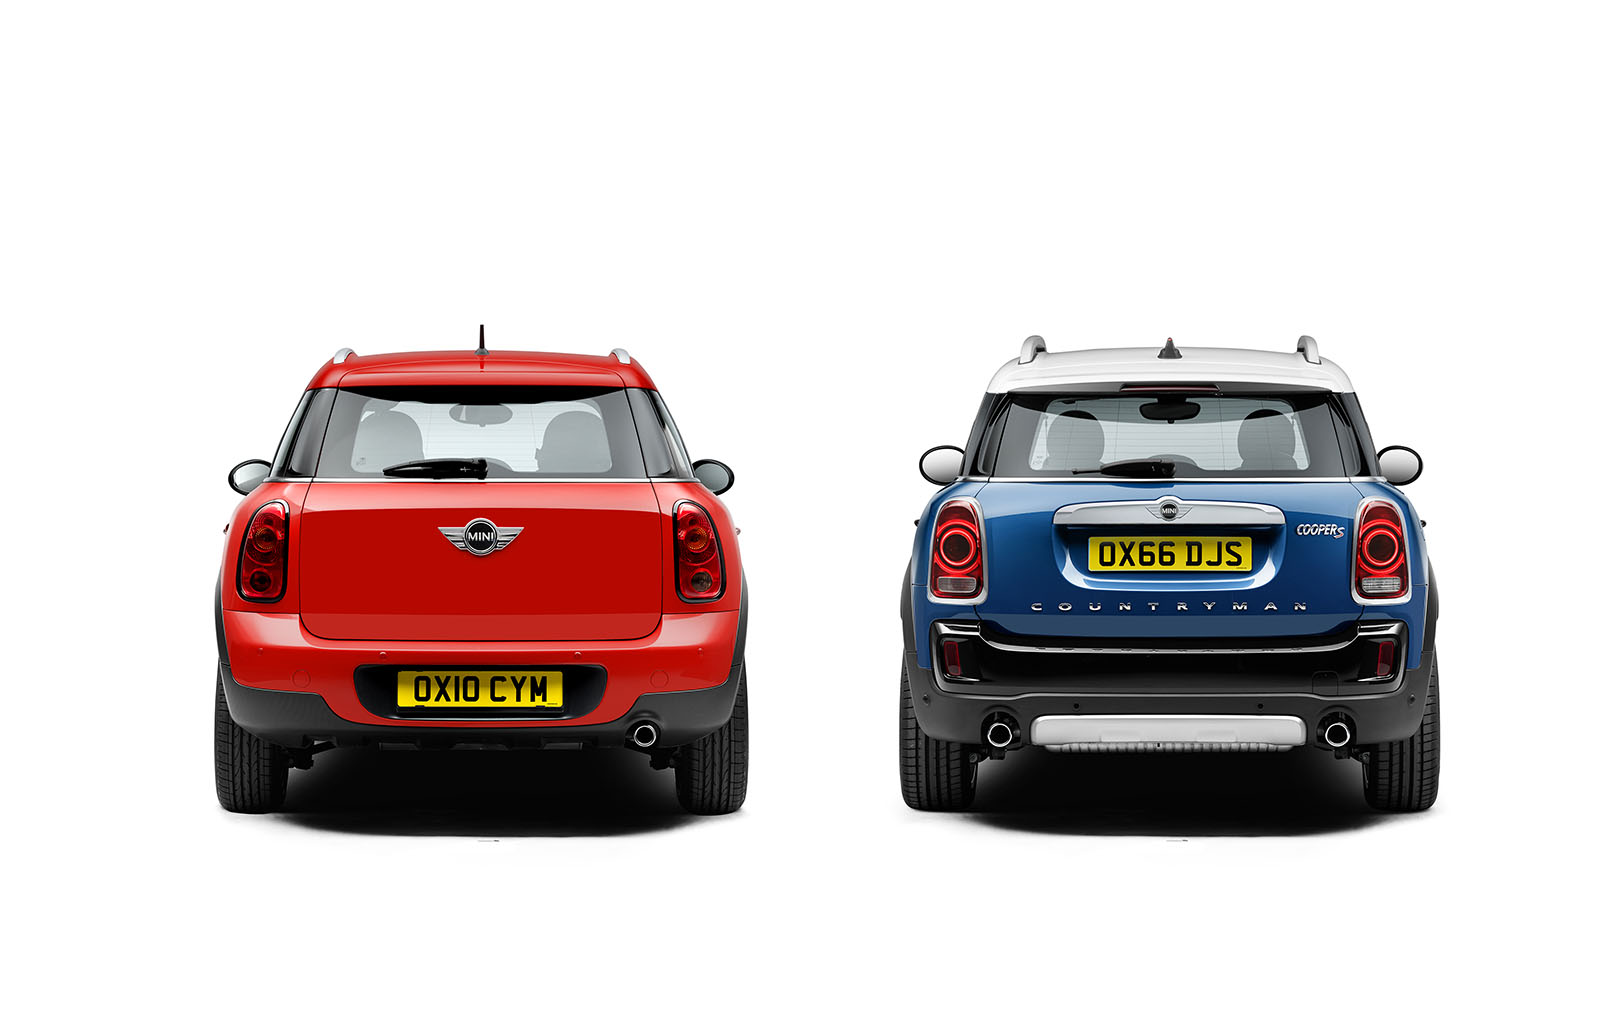 2016 Countryman Vs The 2017 Countryman Visual Differences